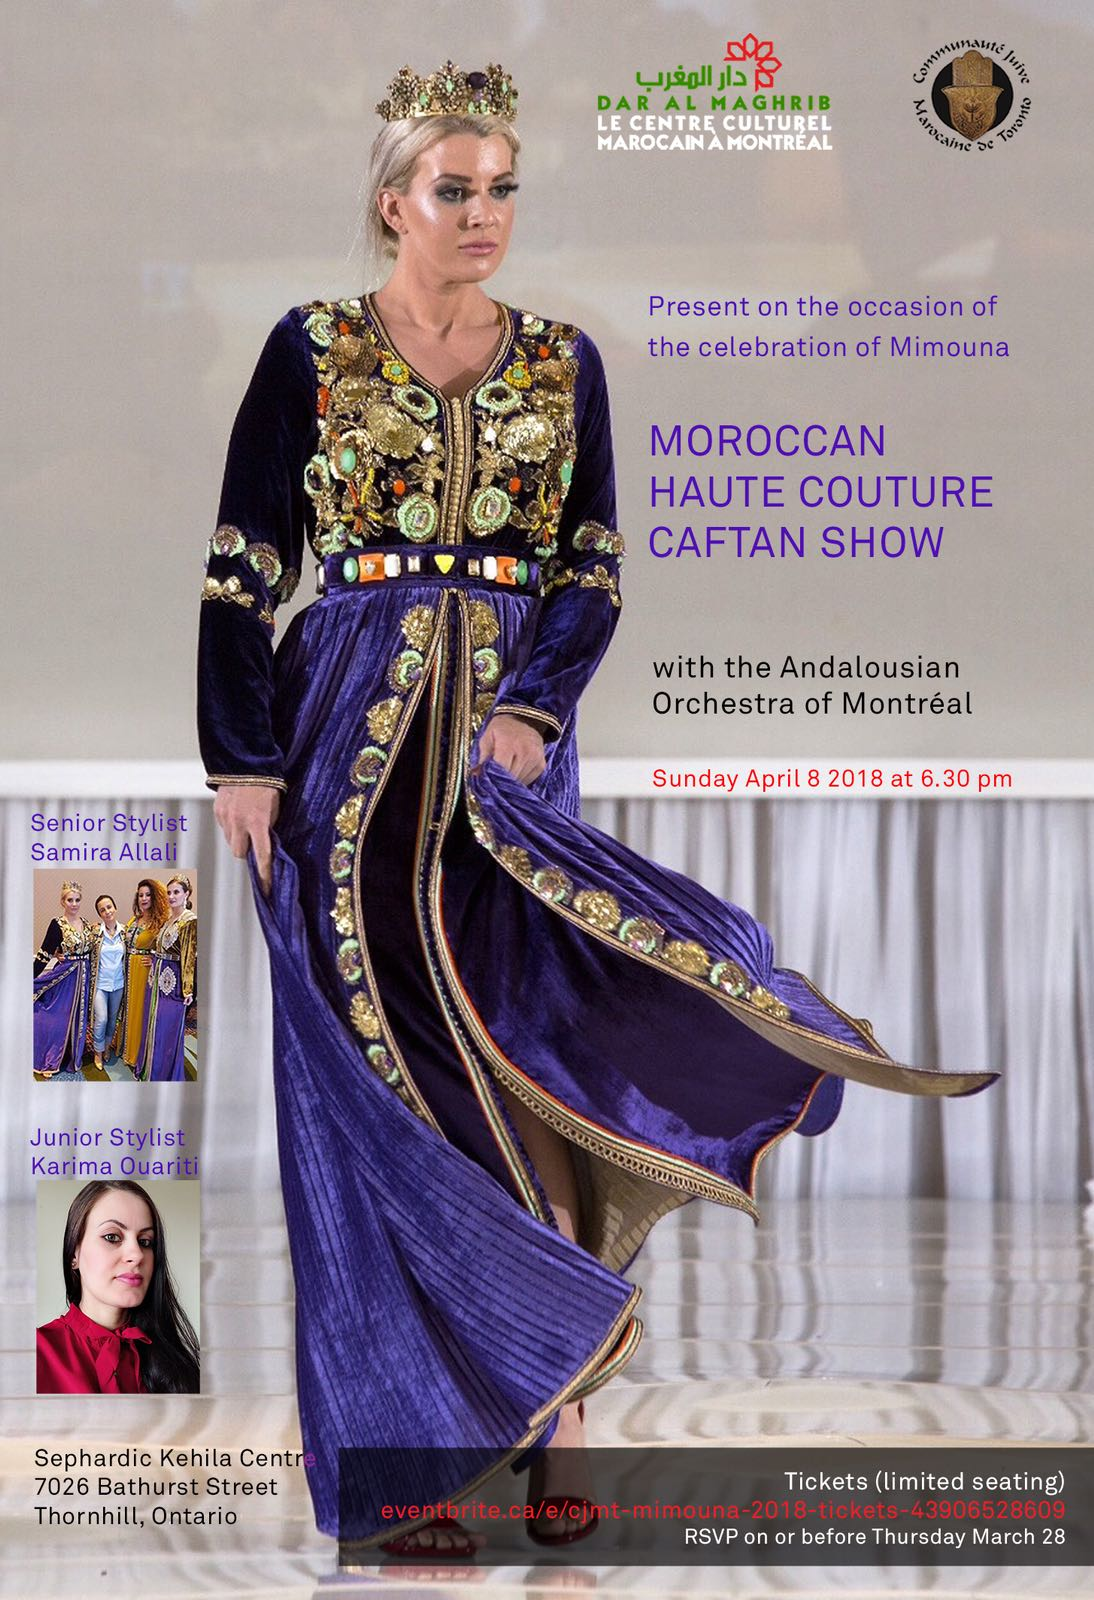 THE MOROCCAN HAUTE COUTURE CAFTAN SHOW